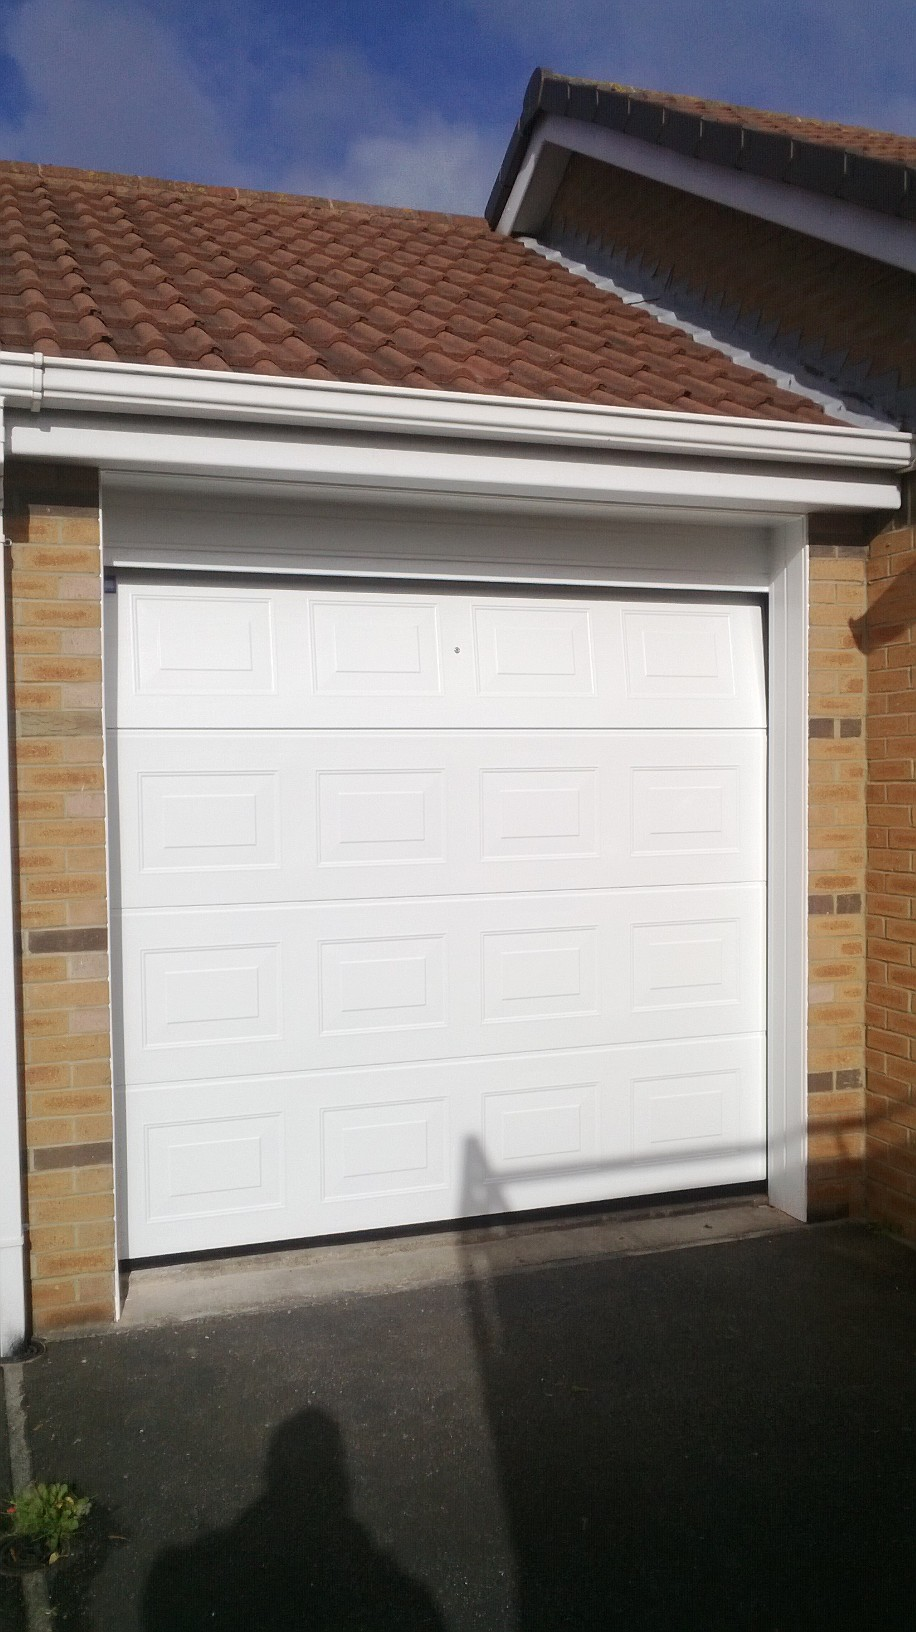 Single Size Rib Style Sectional Garage Door (After)